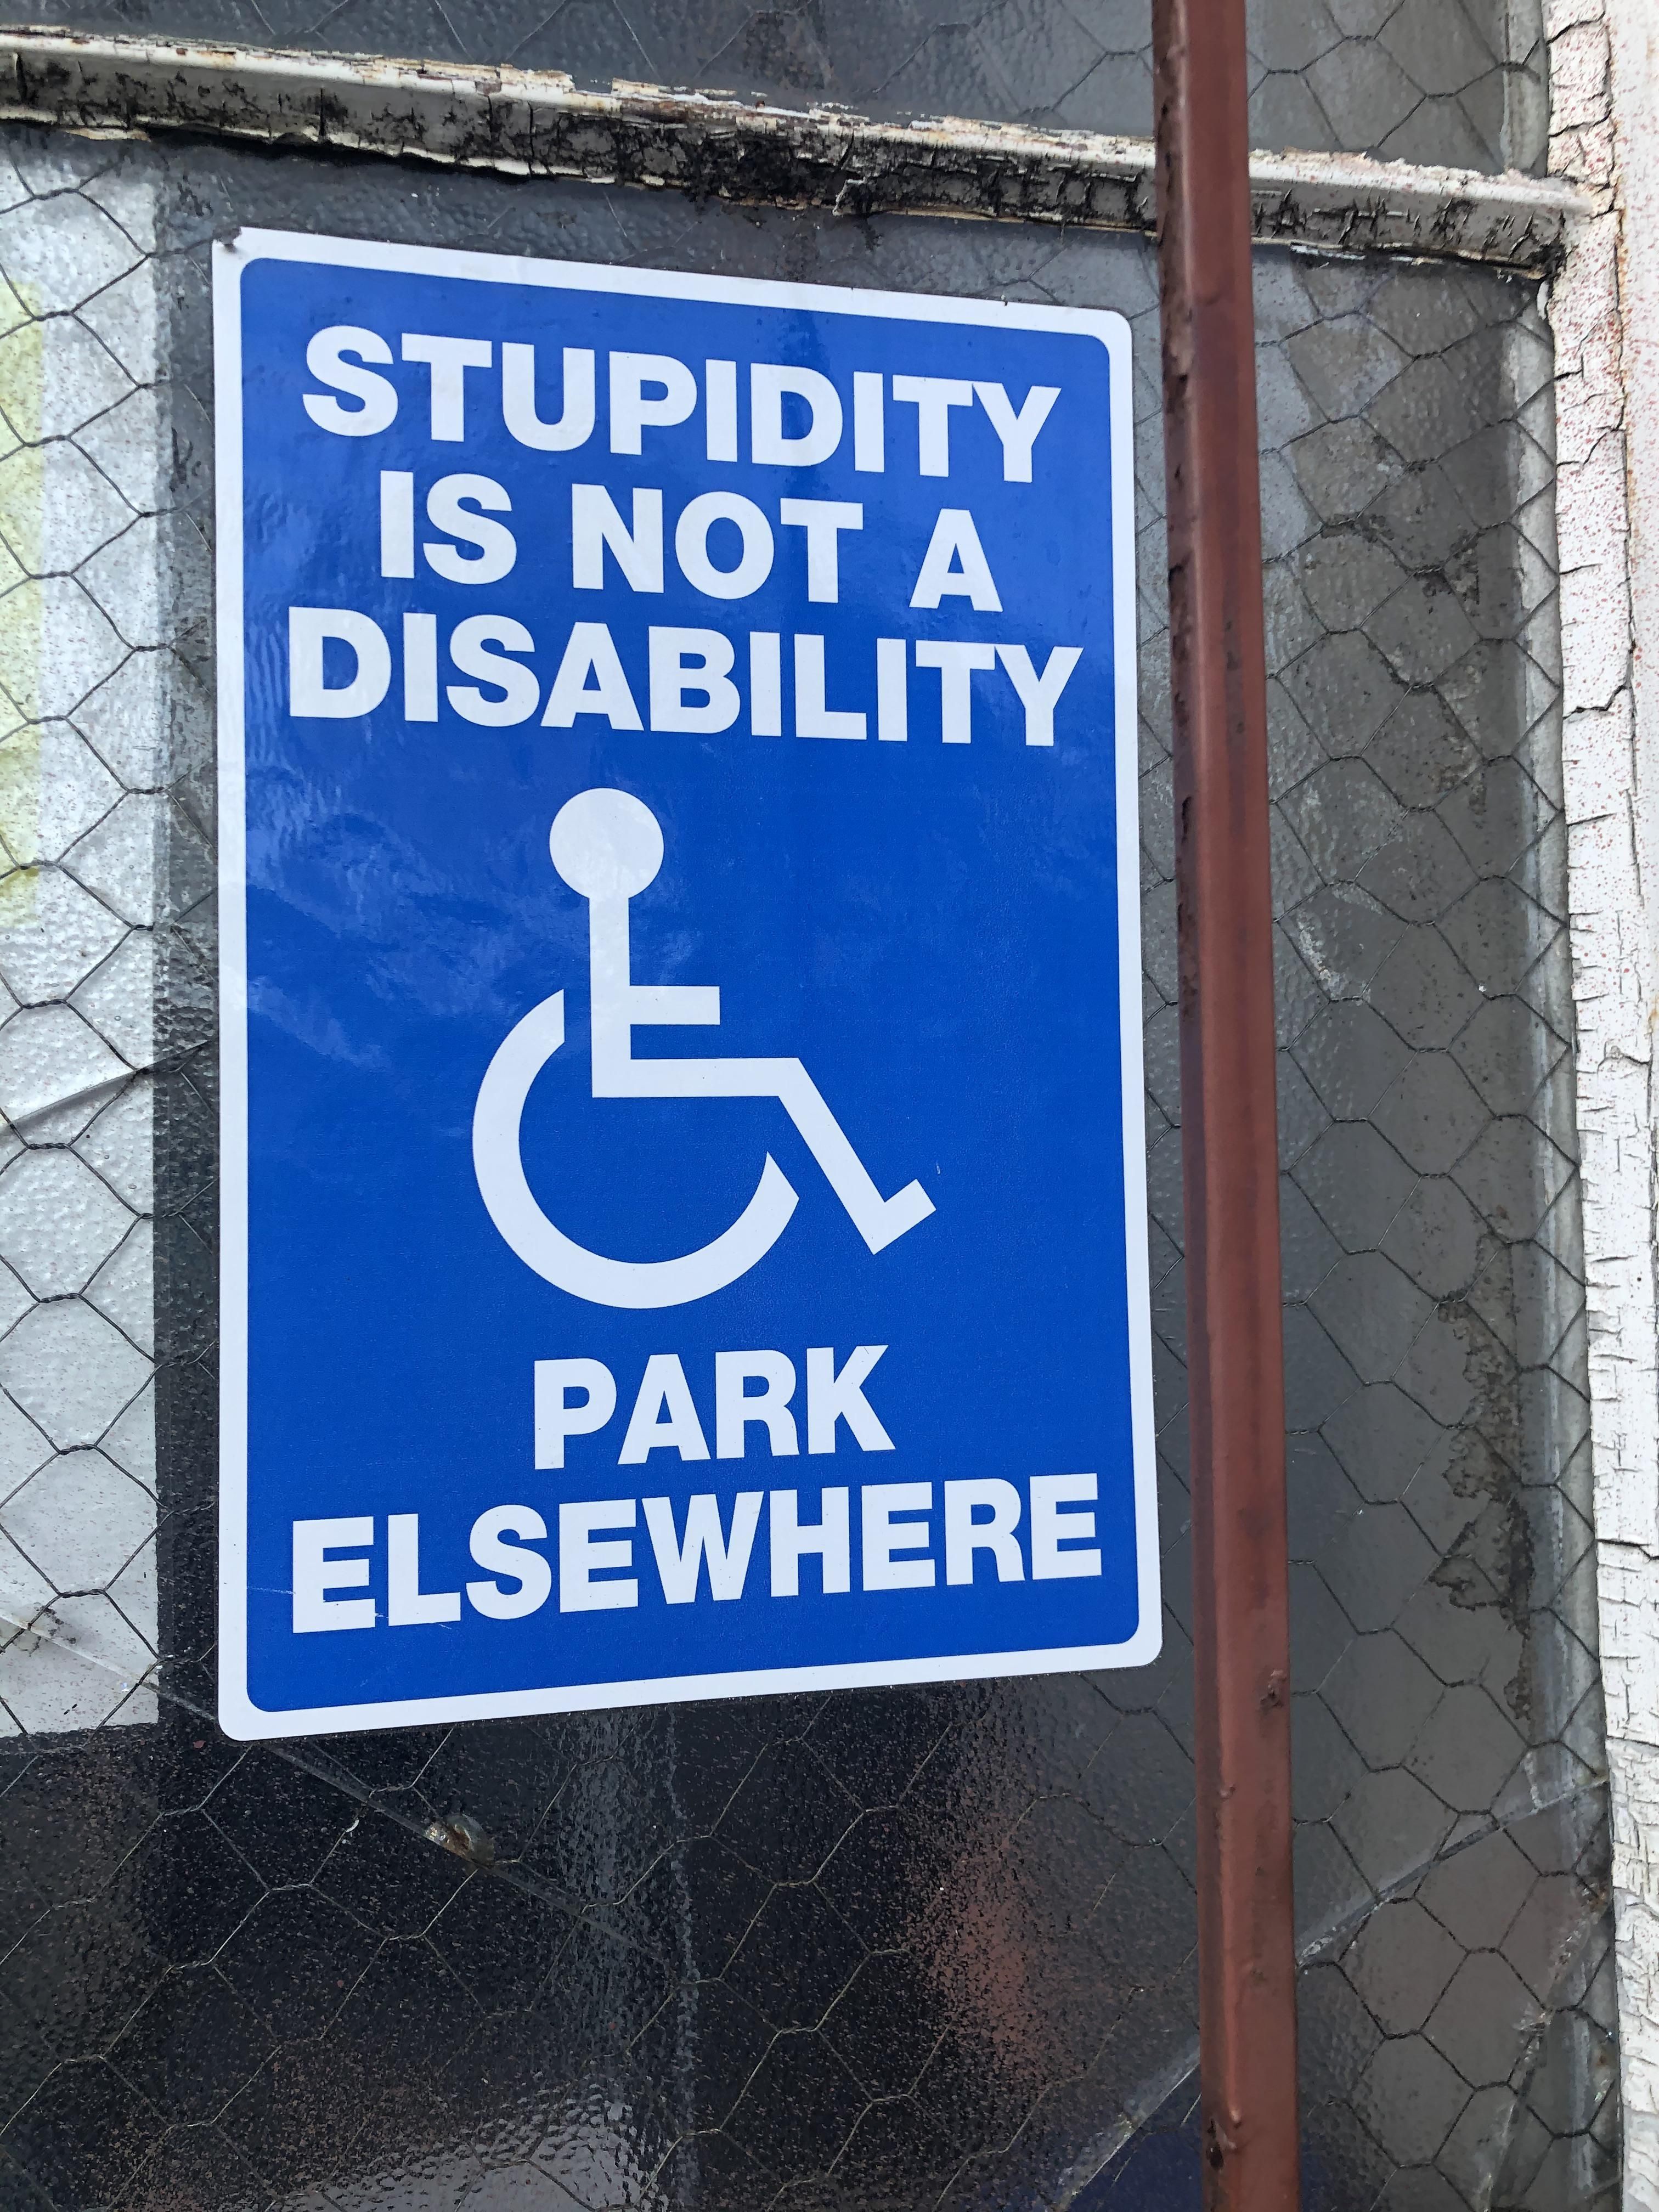 Saw this sign in a car park today